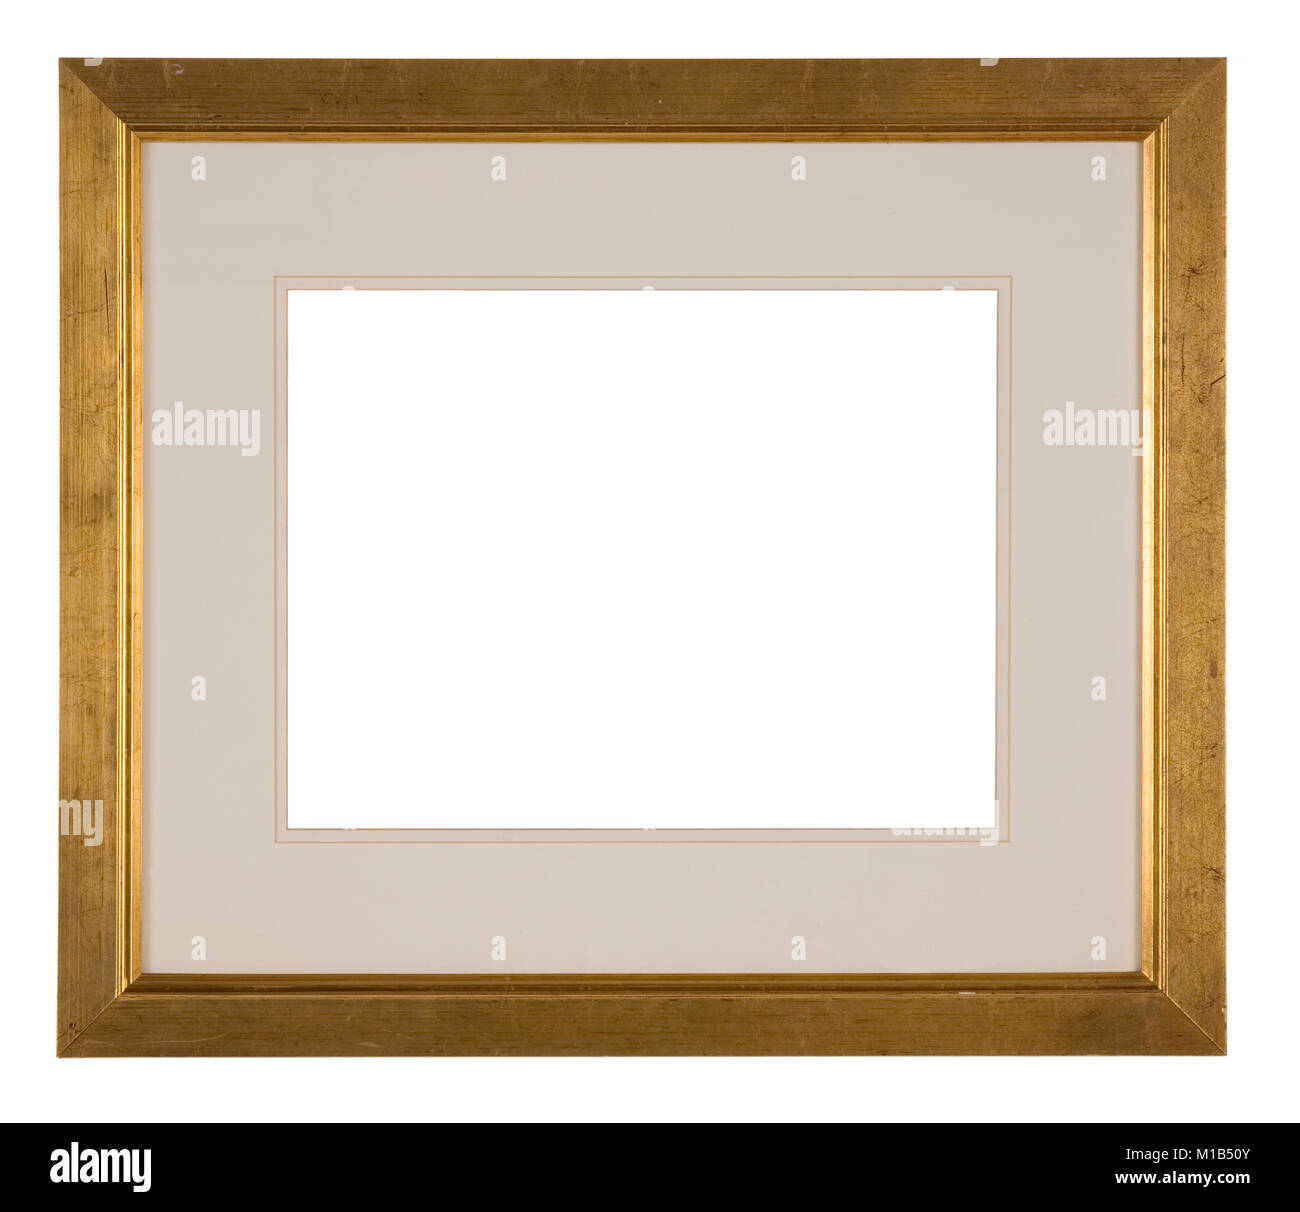 Large empty picture frame, distressed gold finish Stock Photo ...